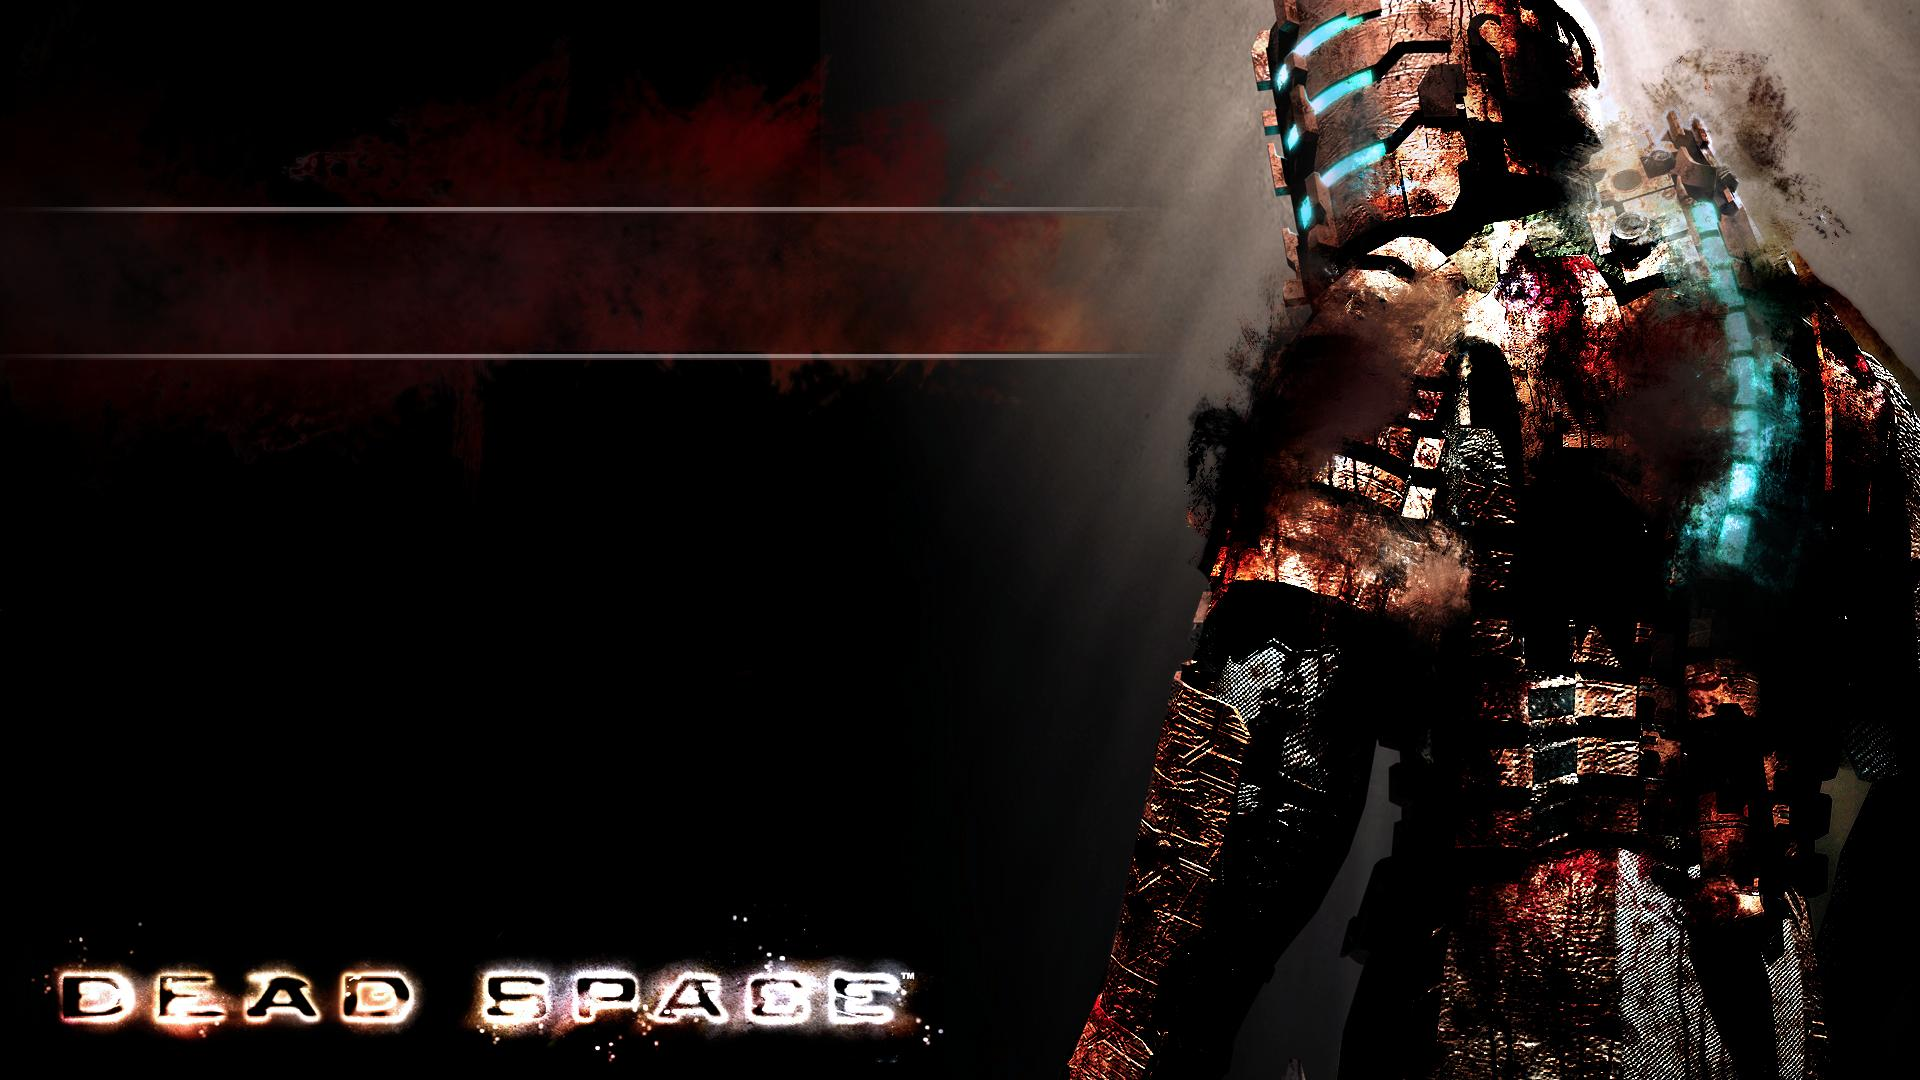 Dead Space HD Wallpapers - Wallpaper Cave